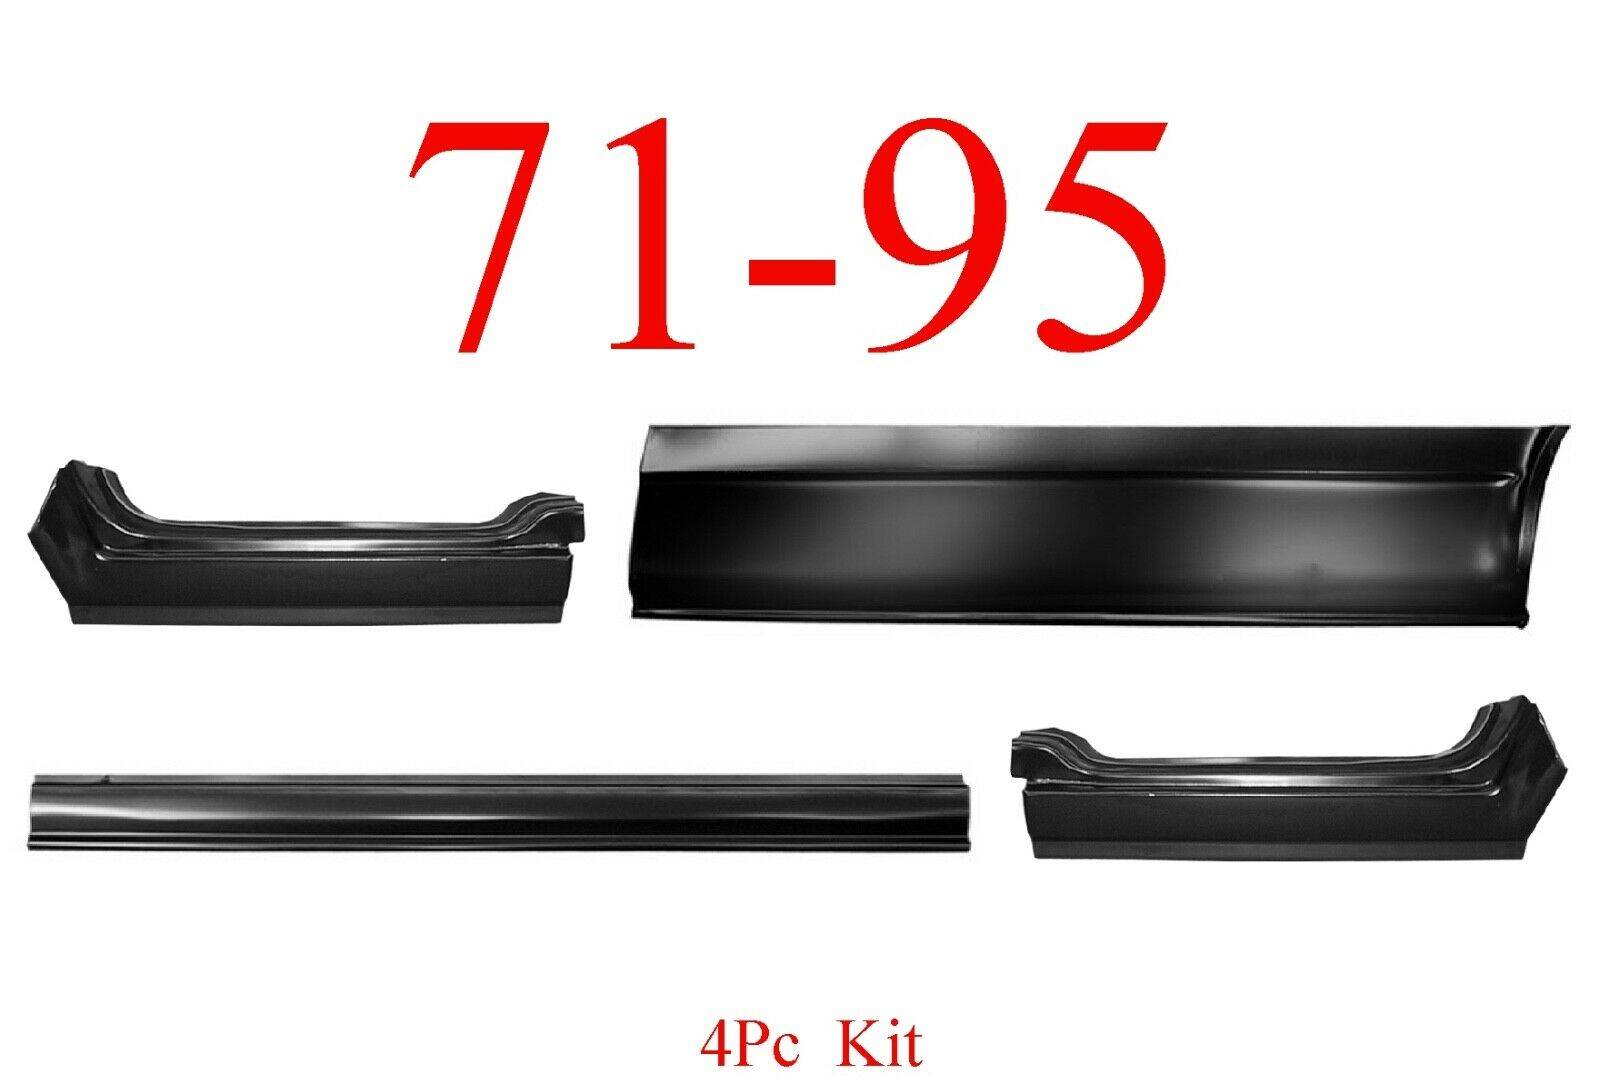 4Pc 71-95 Chevy Van Rocker Panel & Quarter Lower Set